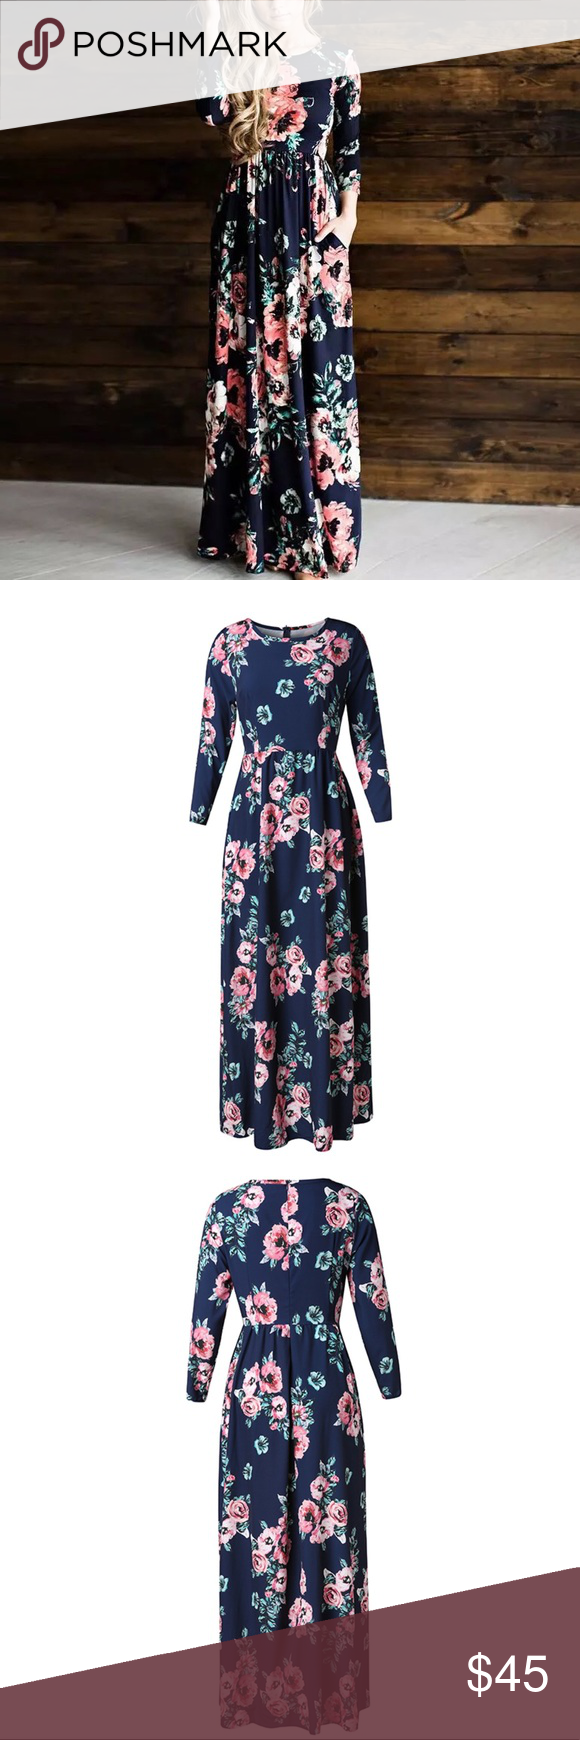 Hp new long floral print chiffon maxi dress boutique in